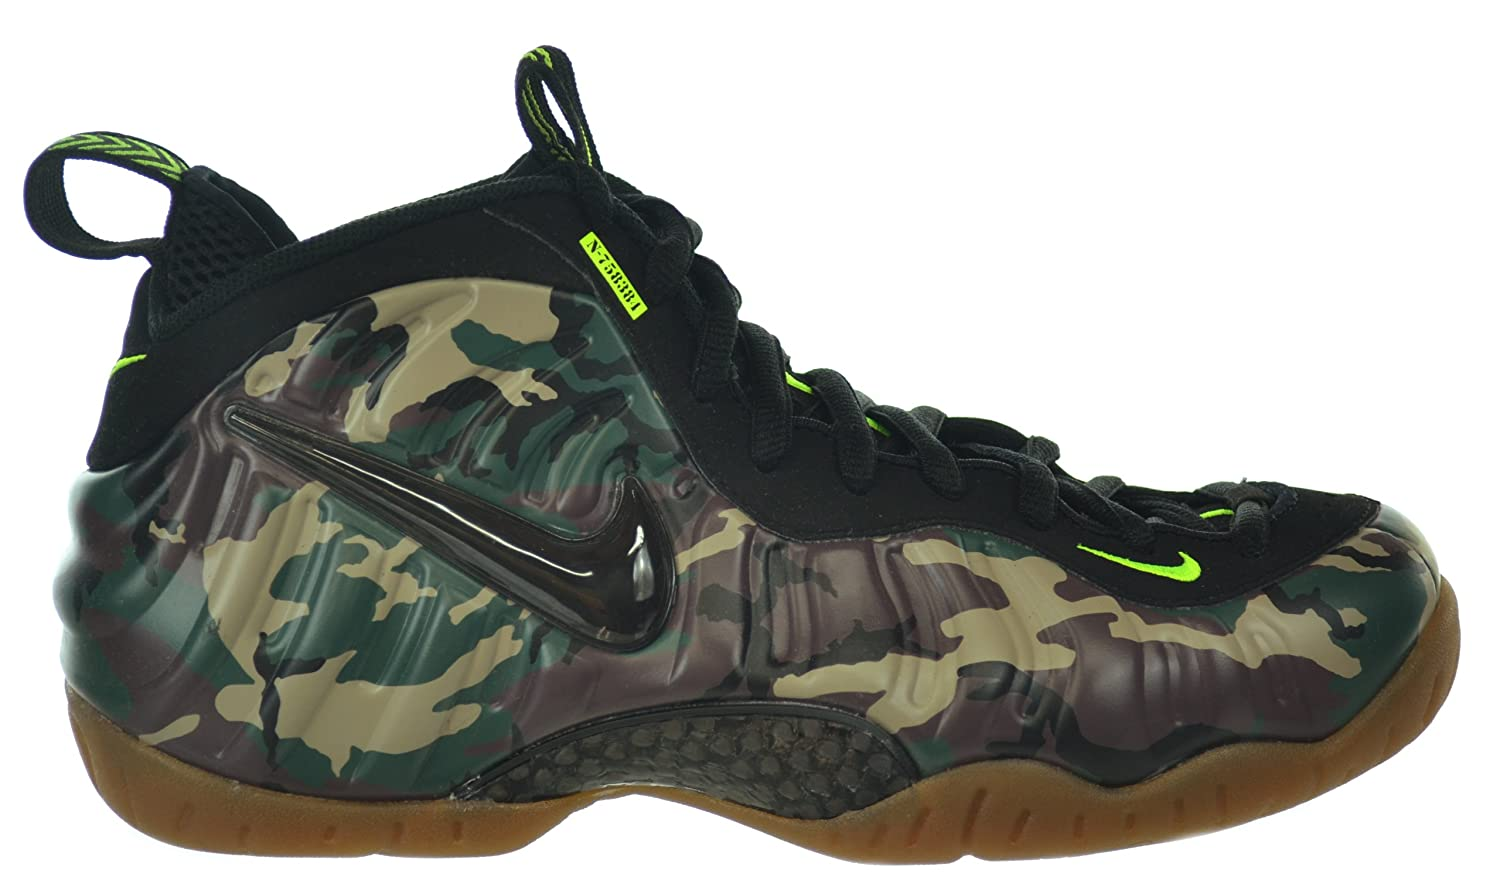 check out d50c5 9e517 Amazon.com   Nike Air Foamposite Pro PRM LE Camo Men s Basketball Shoes  Forest Black   Basketball